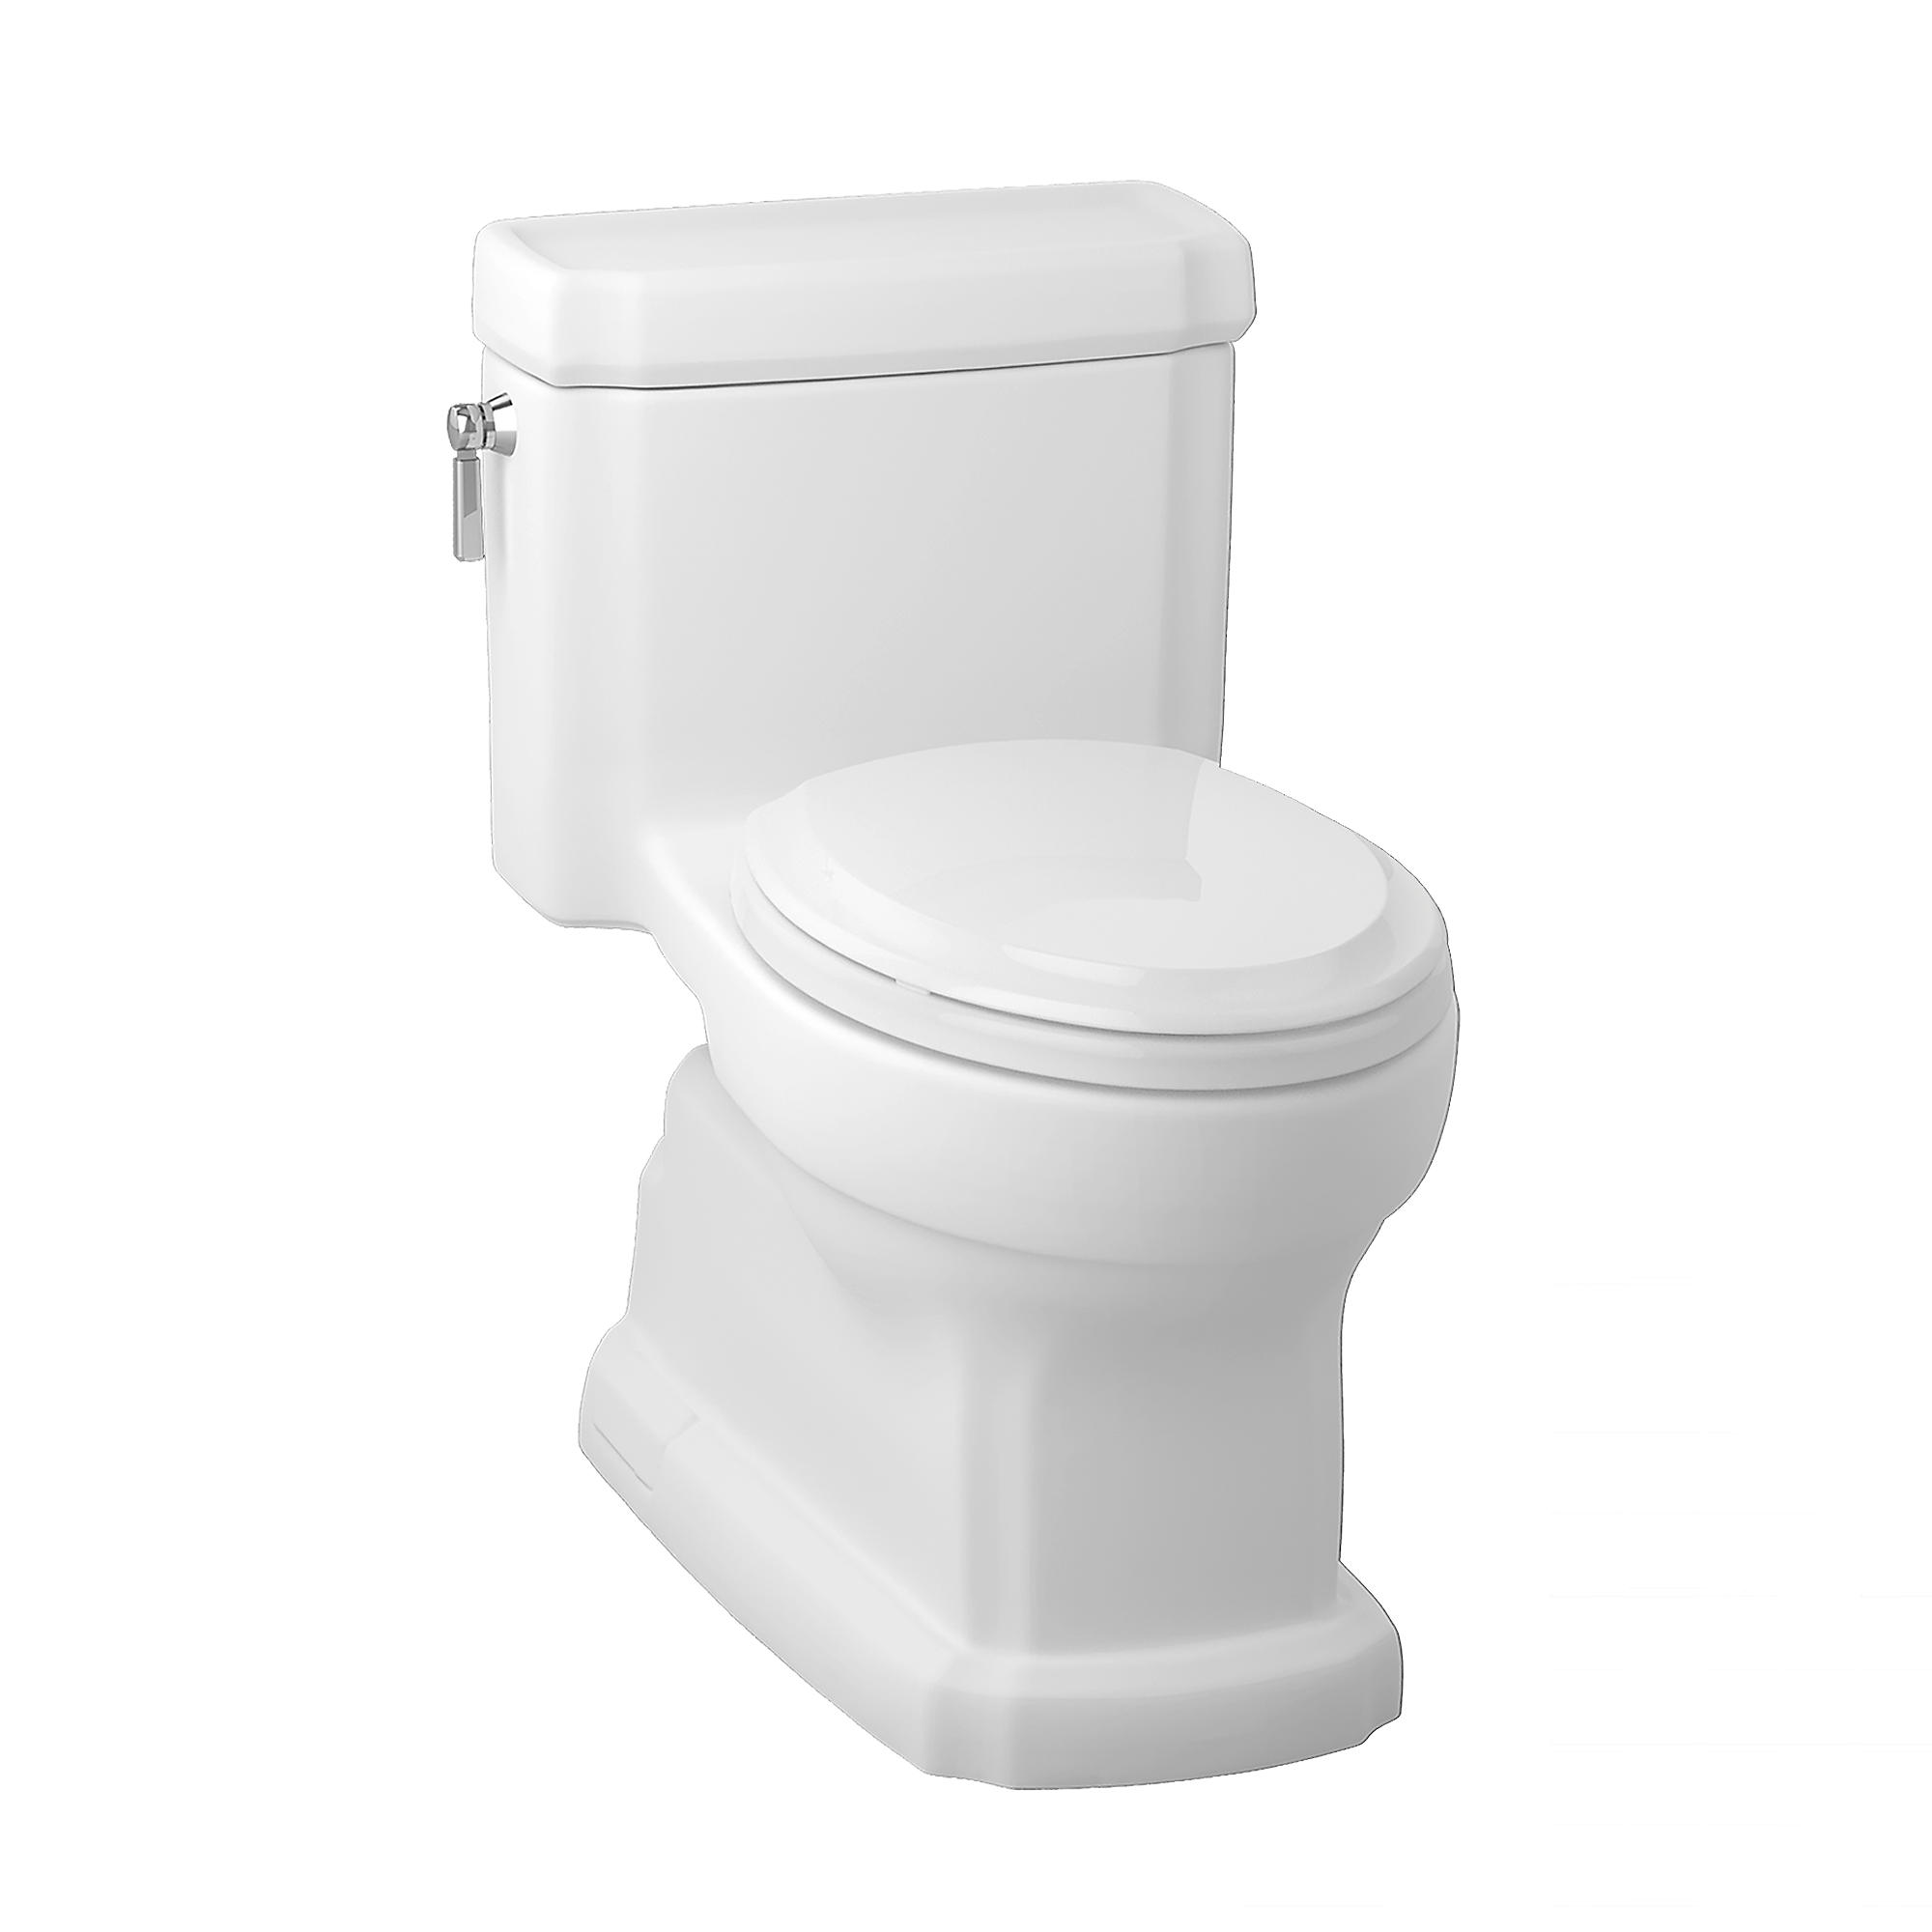 Ms974224cefg 01 eco guinevere  one piece toilet  1 28 gpf  elongated bowl 0